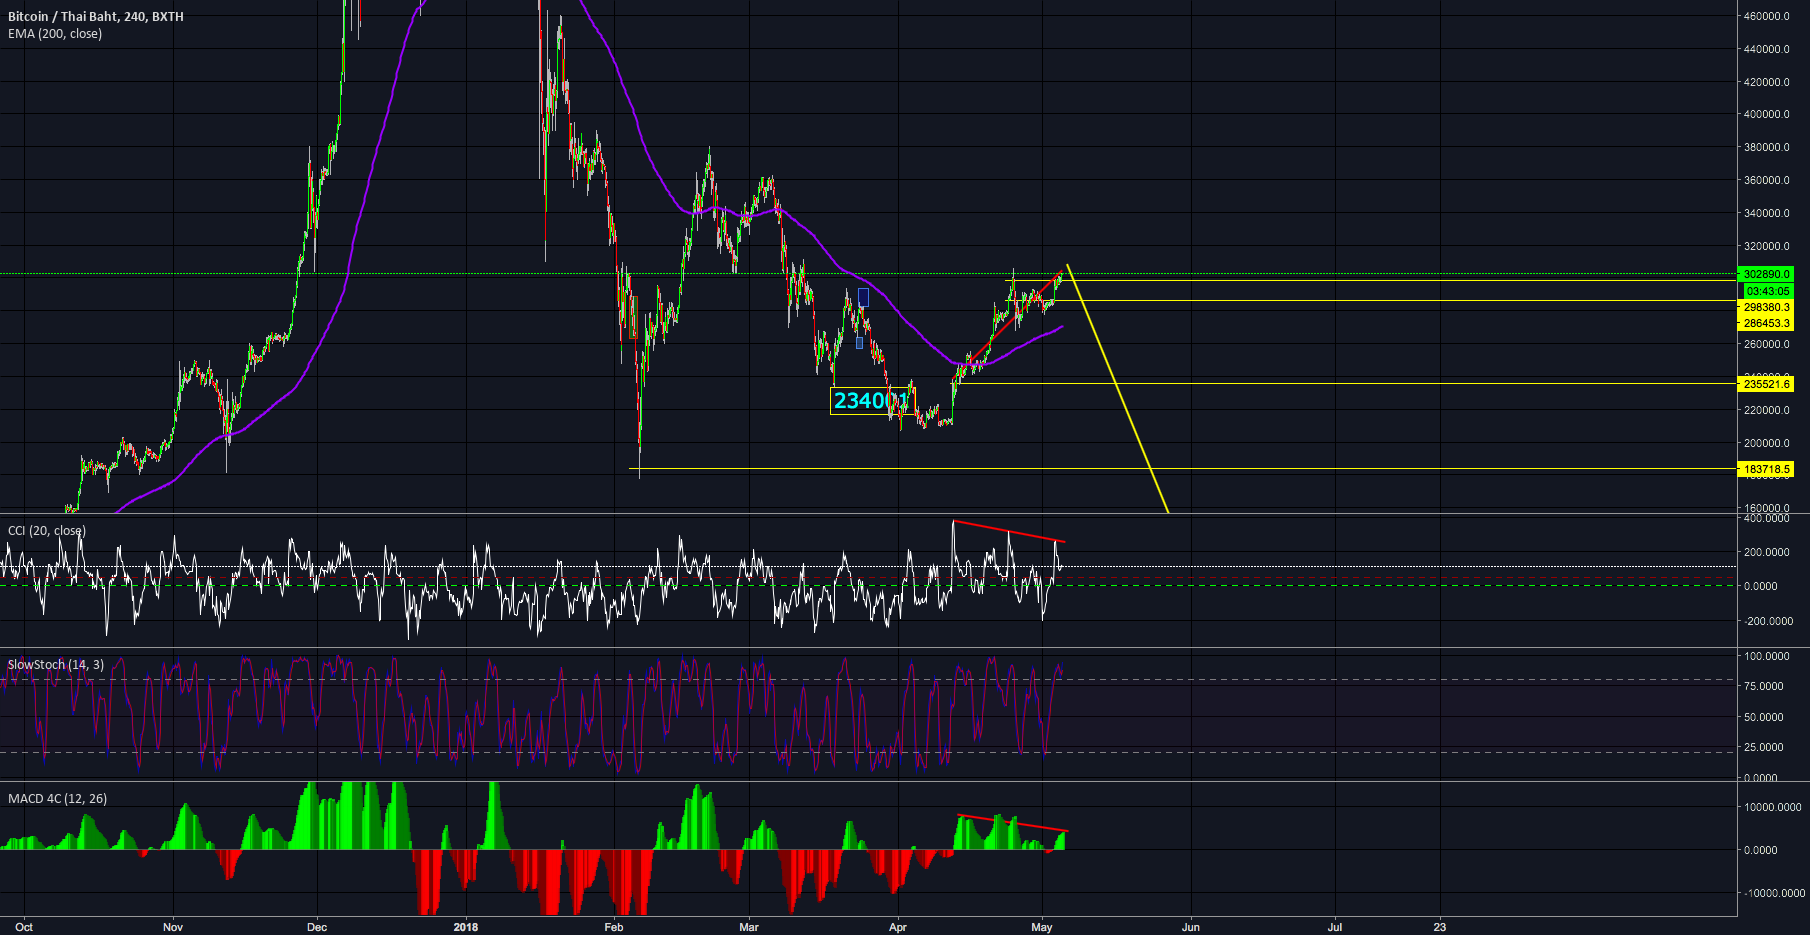 Bitcoin Price Watch; Here's What We're Looking To End The Week With